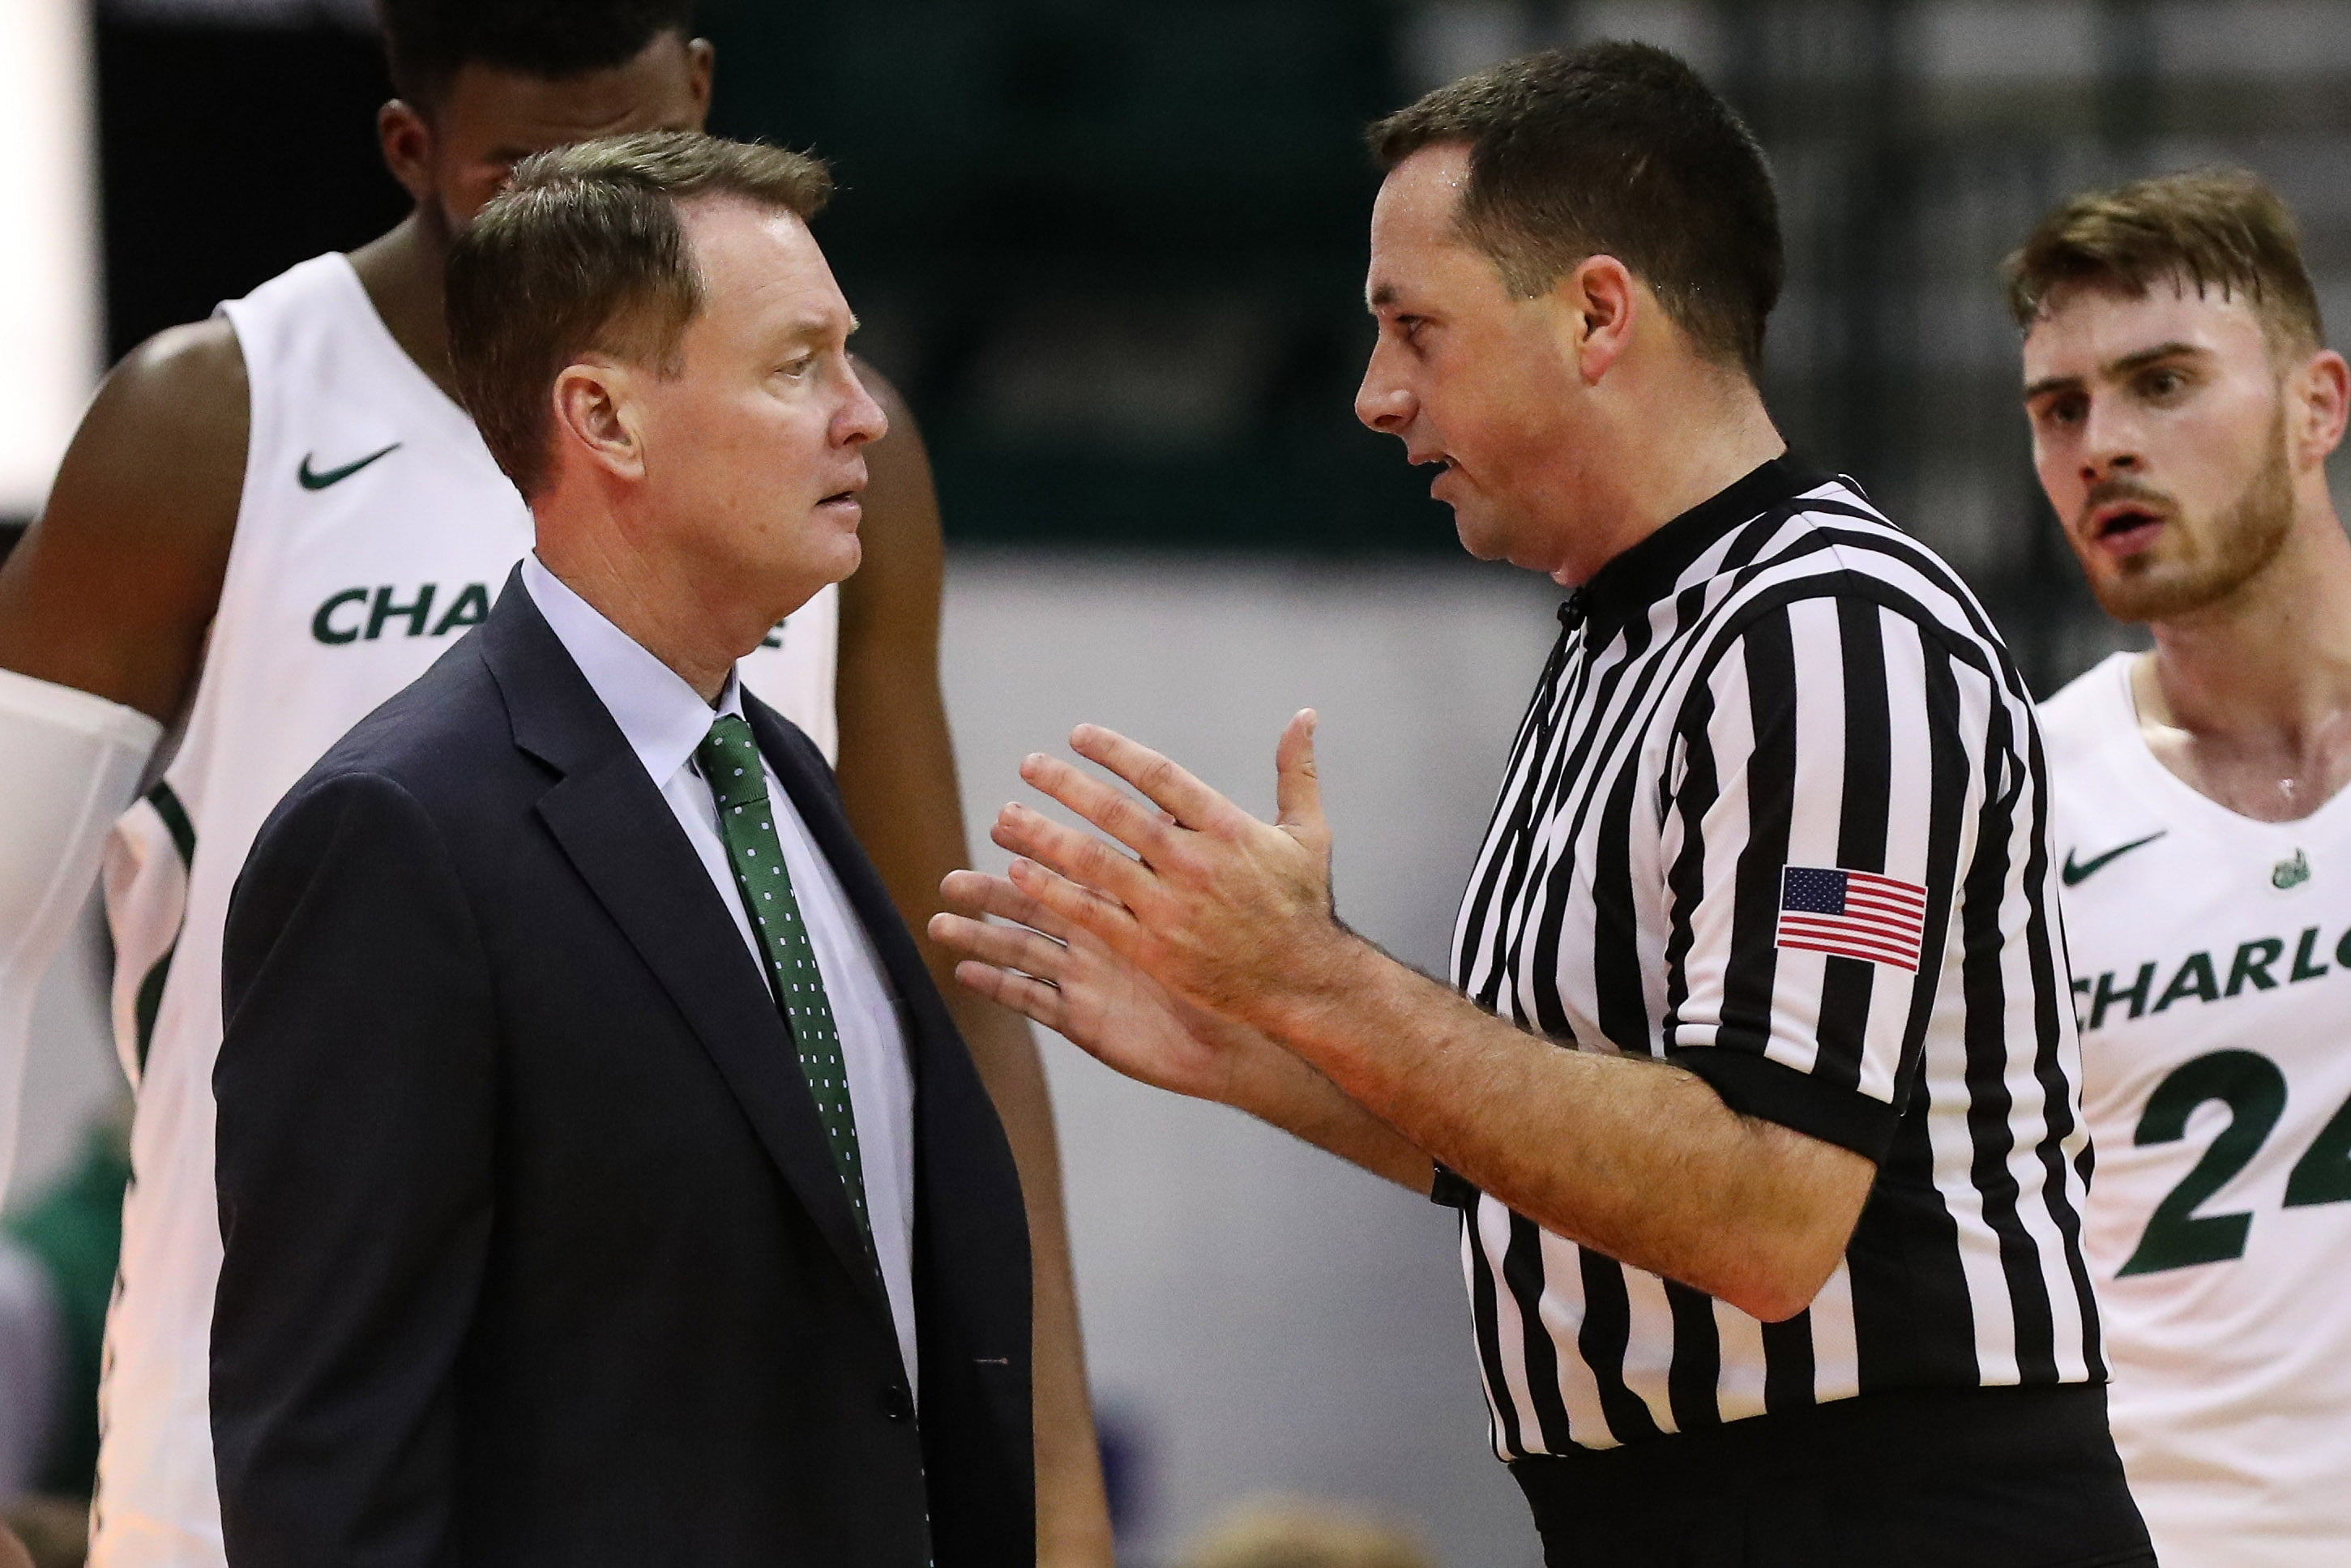 Charlotte fires former NBA All-Star Mark Price as 49ers men's basketball coach